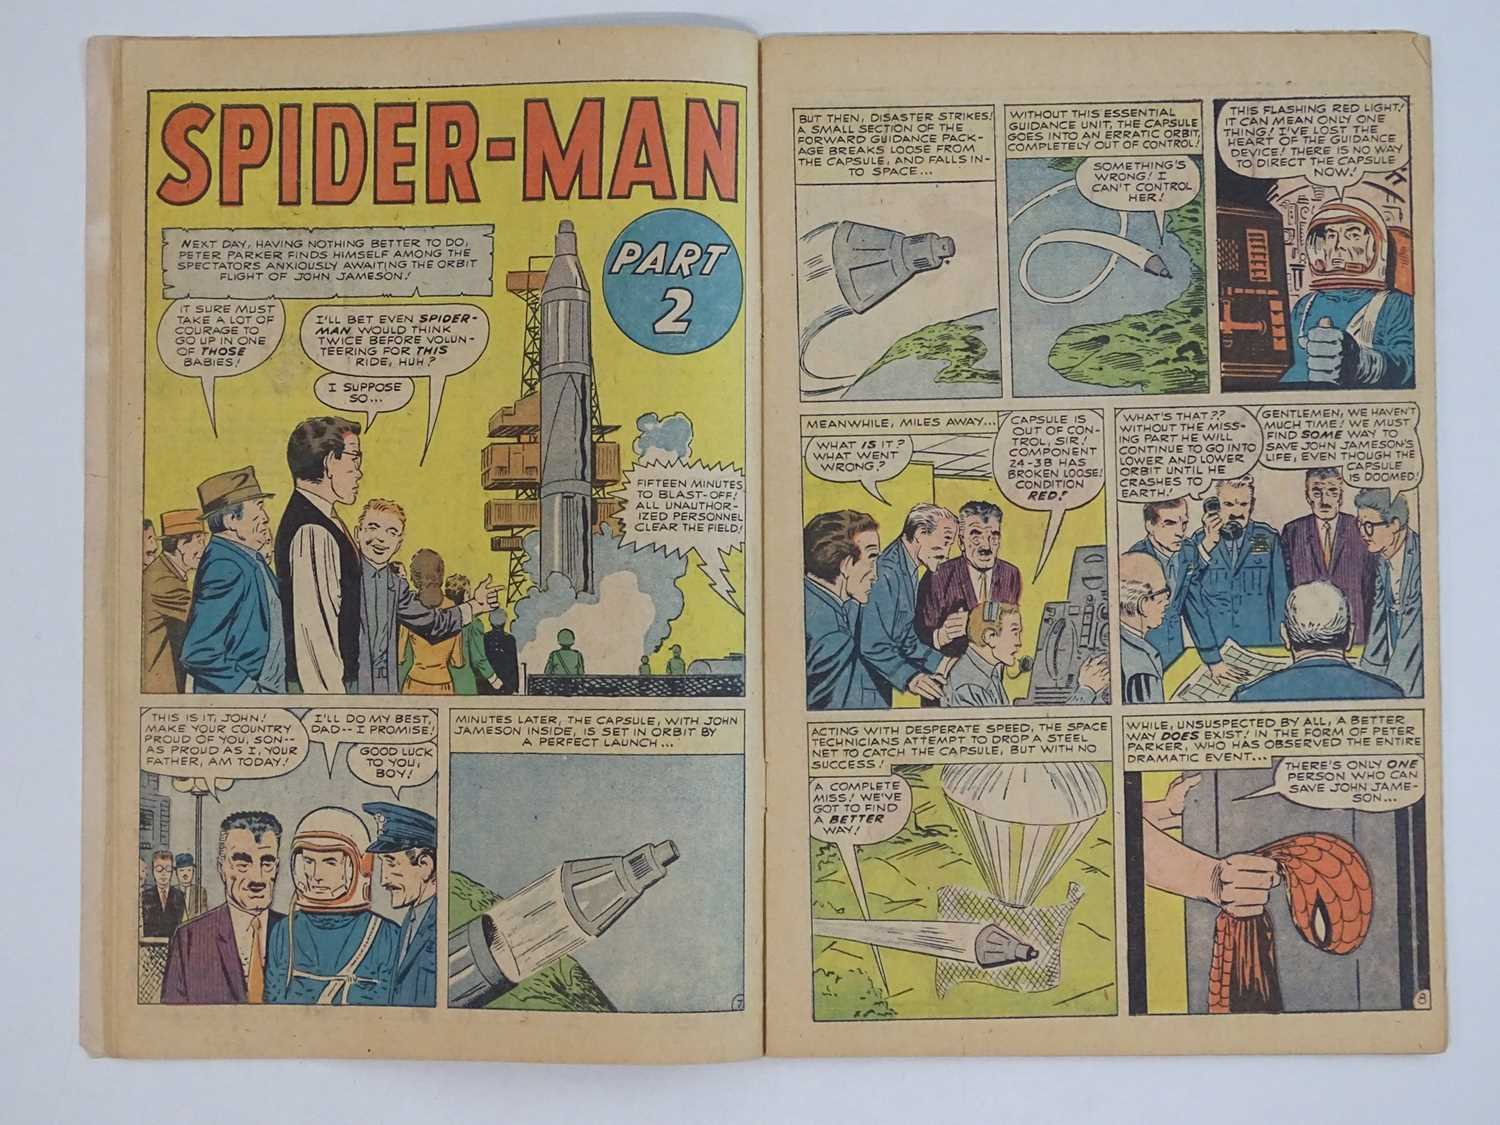 AMAZING SPIDER-MAN #1 - (1963 - MARVEL - UK Price Variant) - First appearance of Spider-Man un his - Image 13 of 27